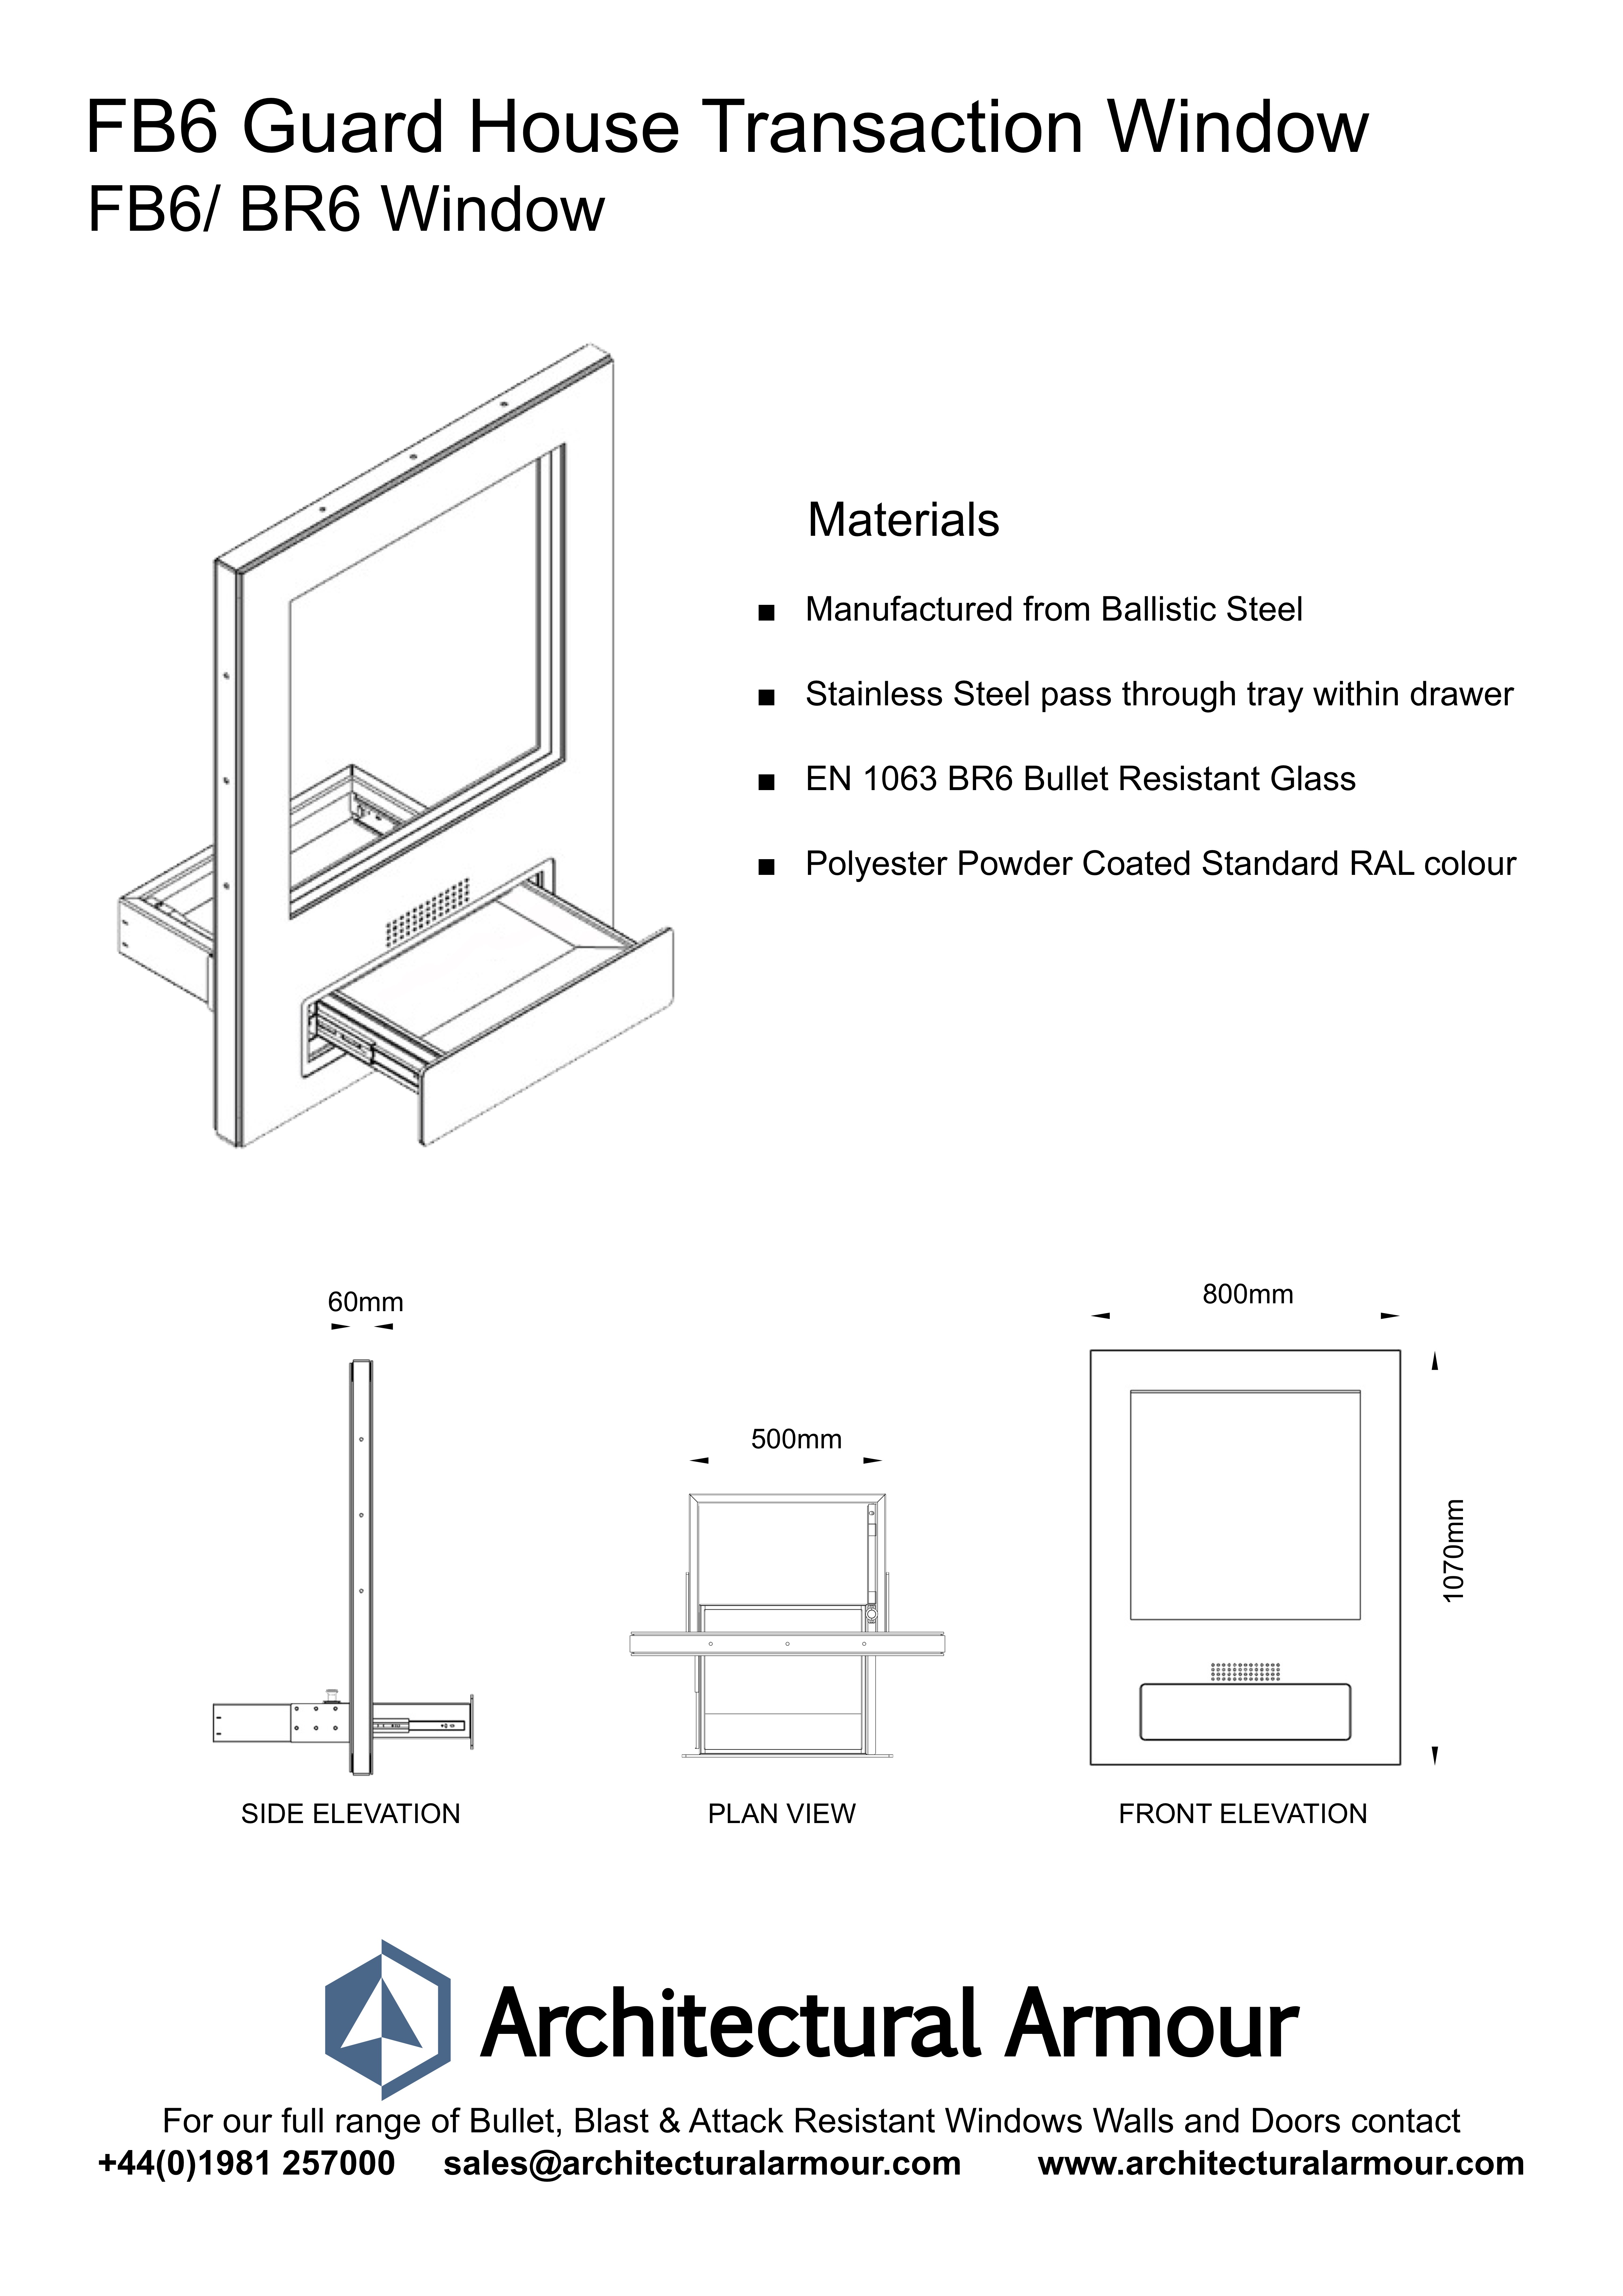 FB6 BR6 Guard House Transaction Window Dimensions